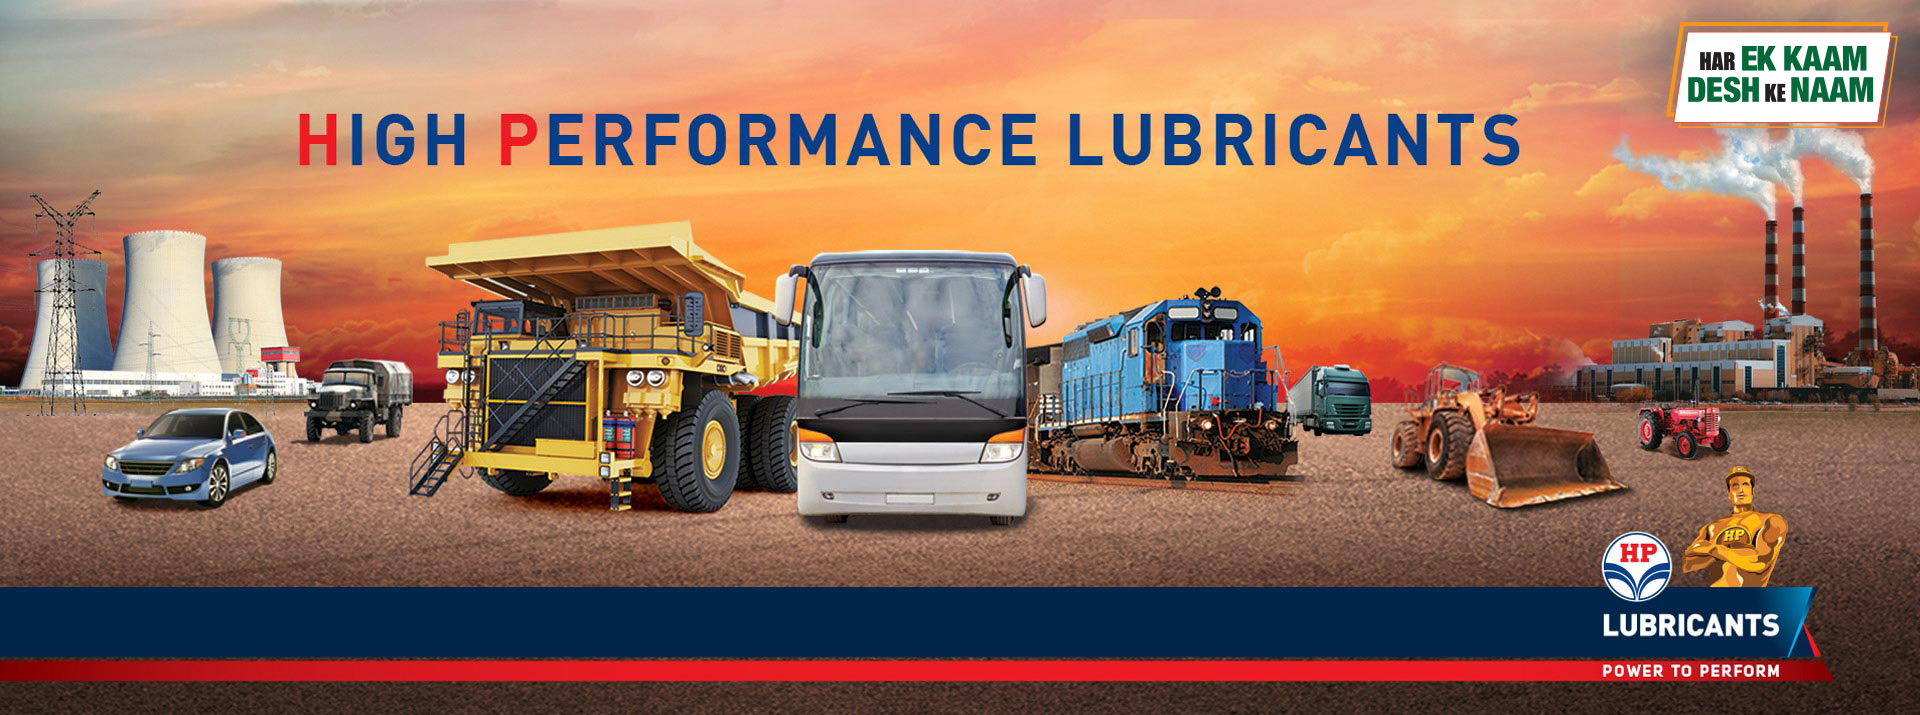 High-Performance Lubricants